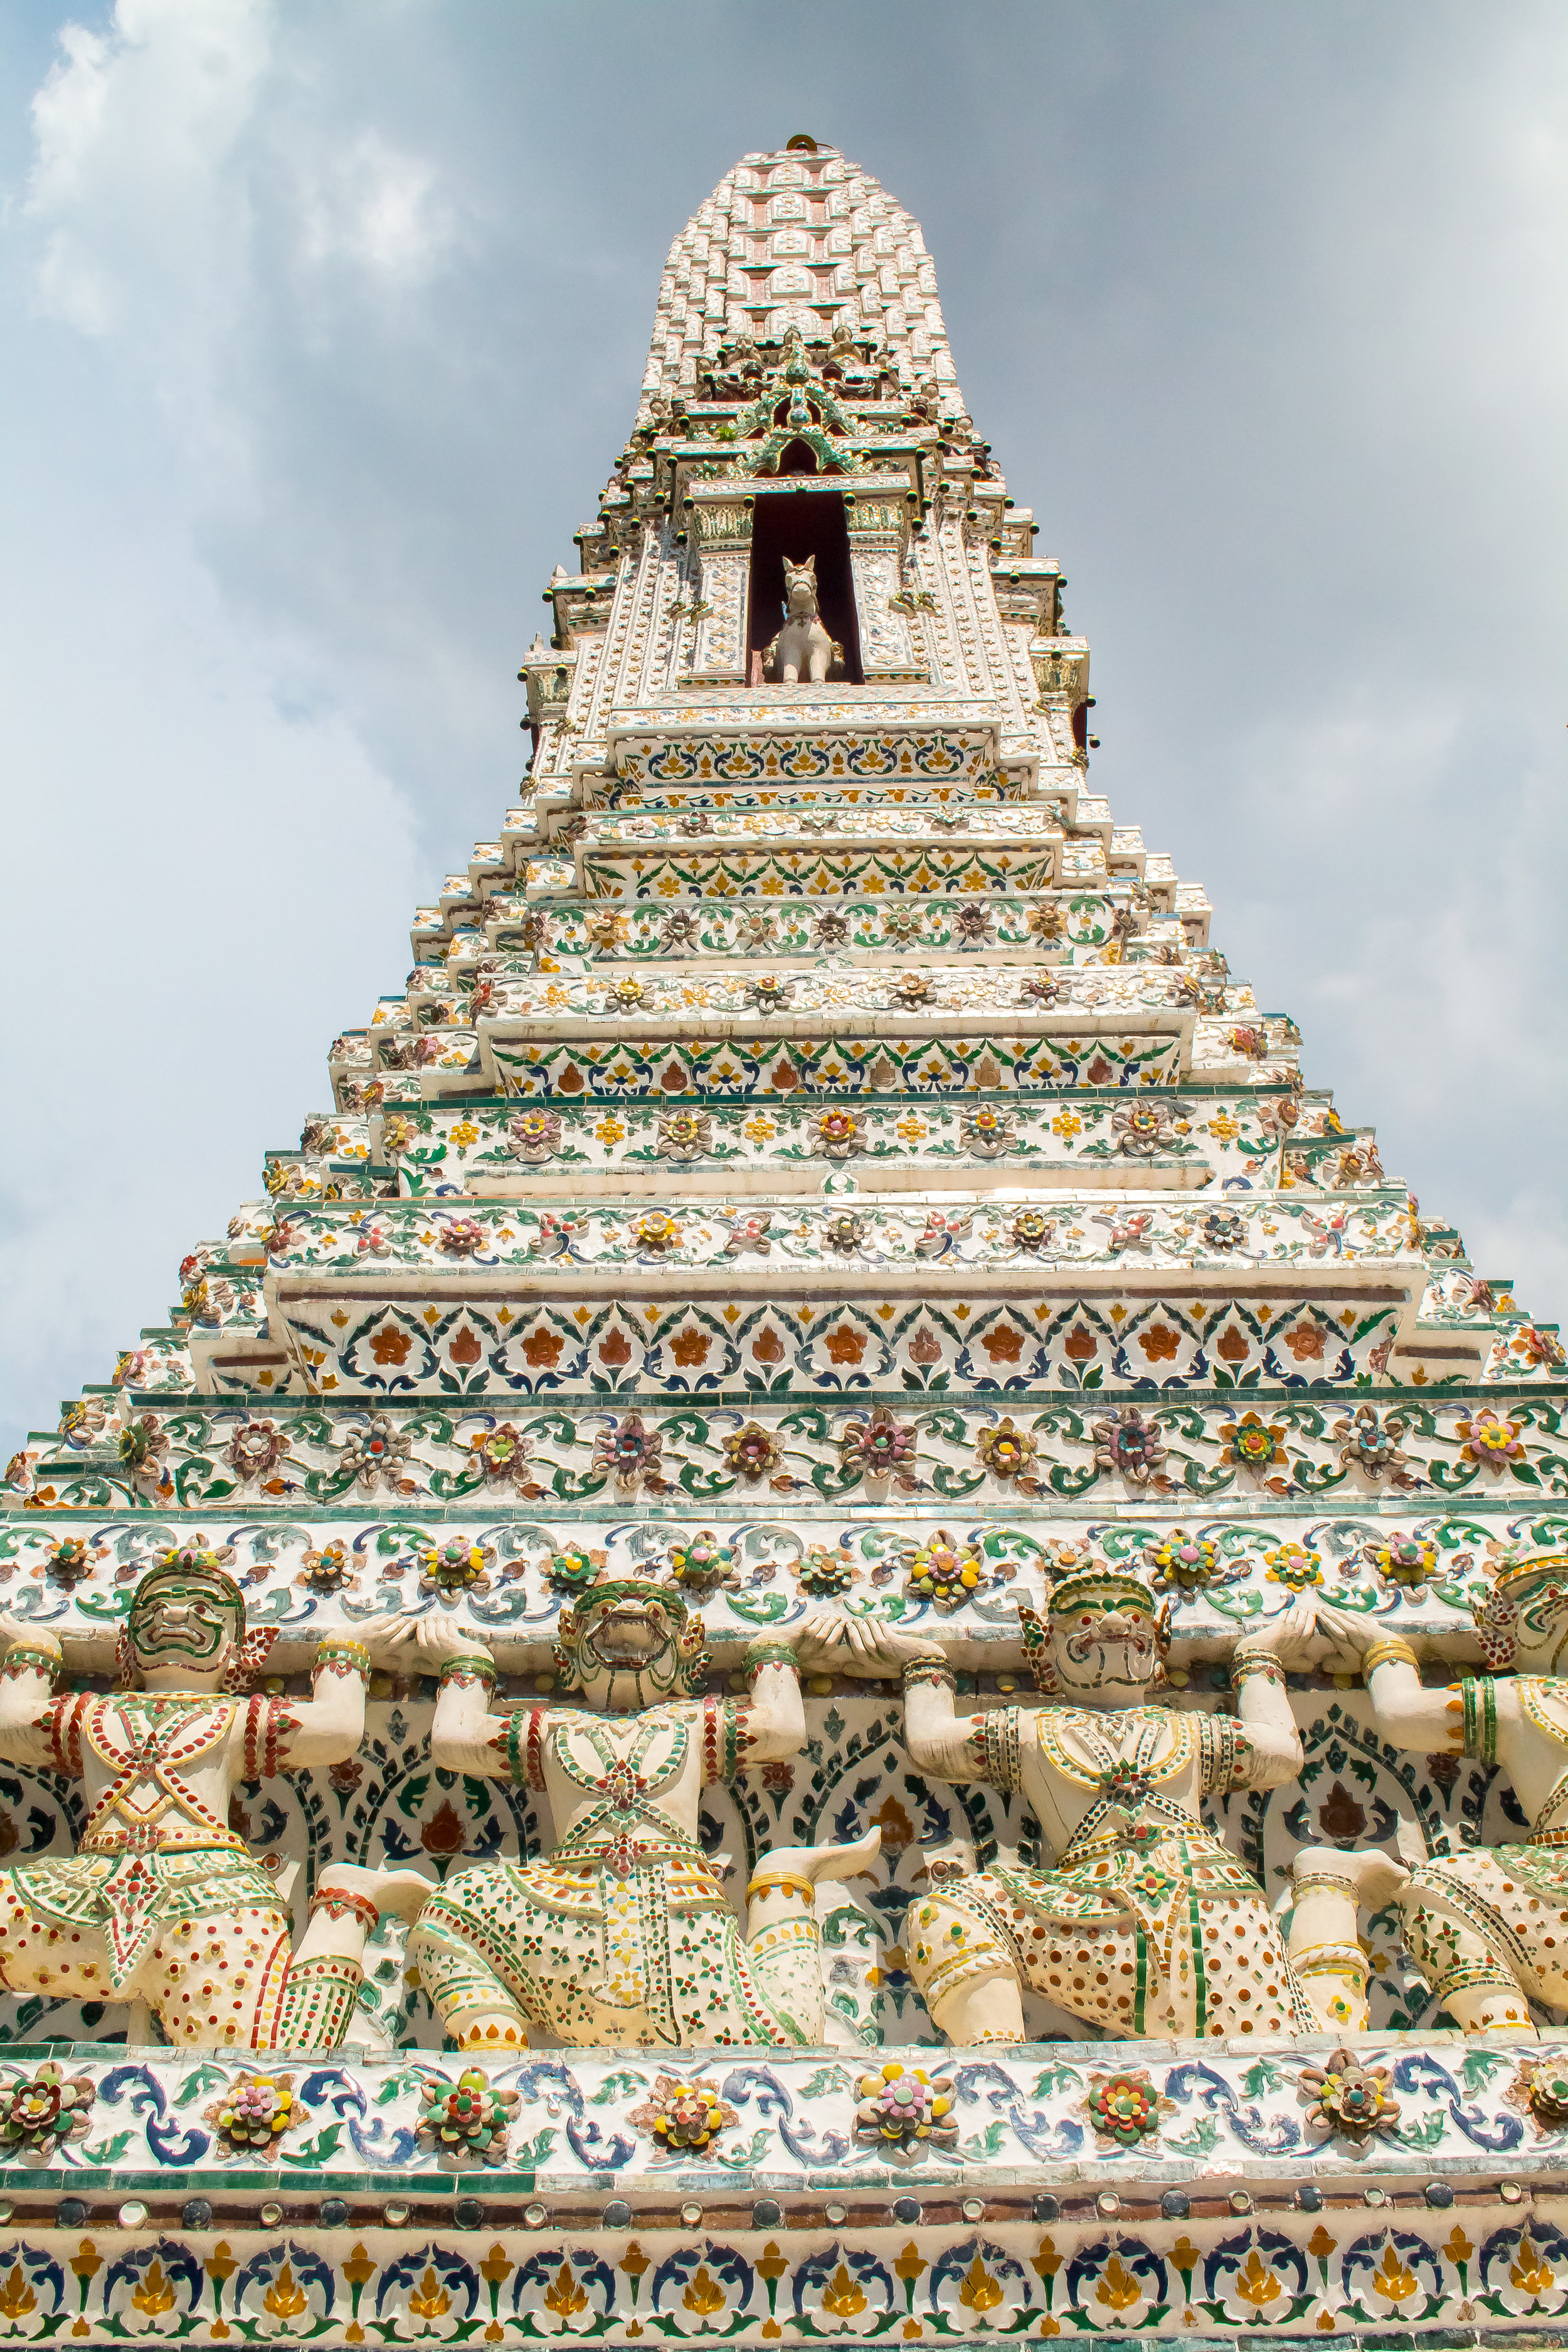 Detail of one of the spires of Wat Arun, Bangkok, Thailand